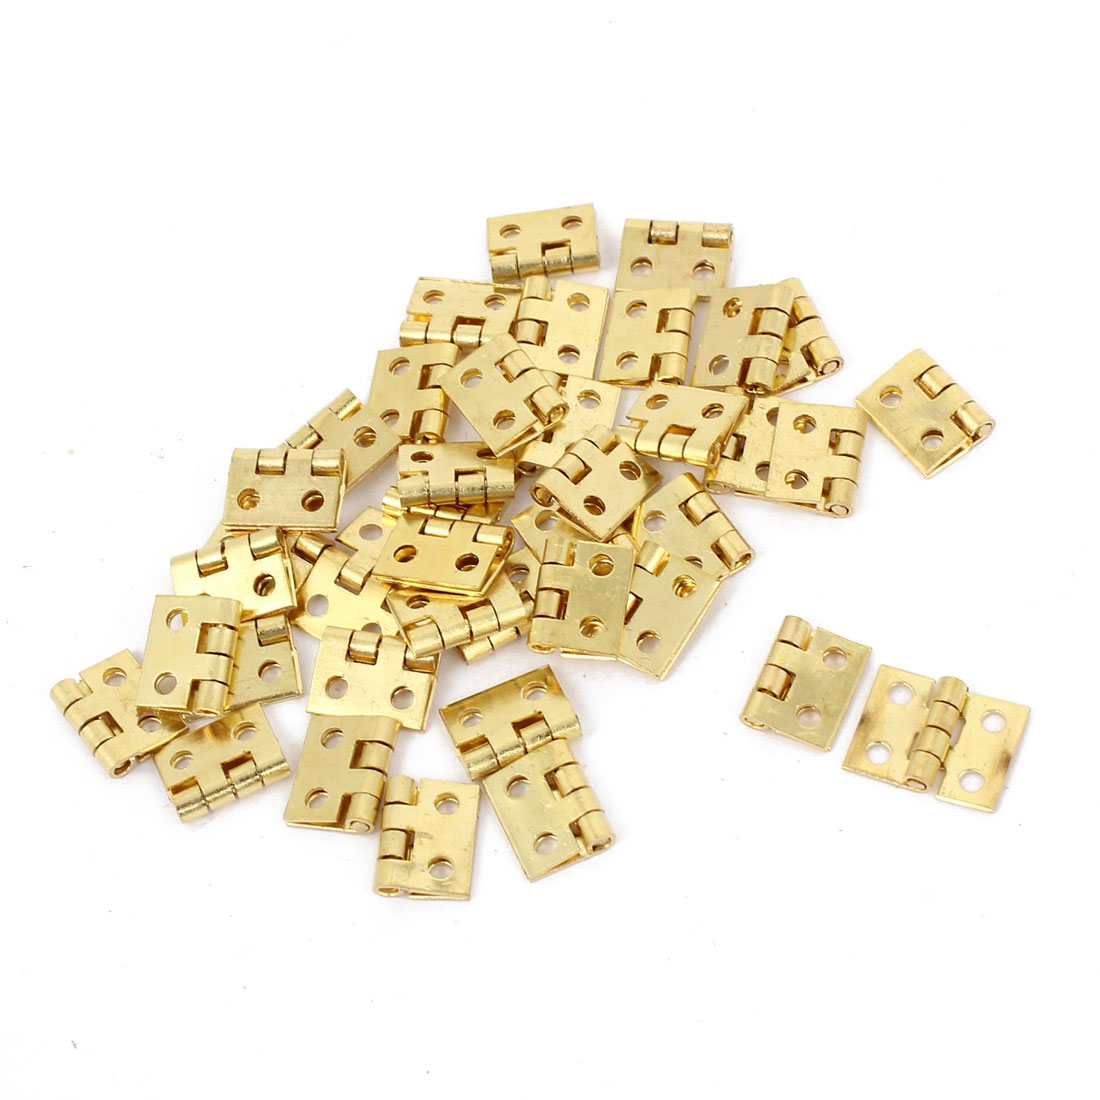 40 Pcs Gold Tone Rotatable Window Drawer Door Butt Hinges 8mm Long